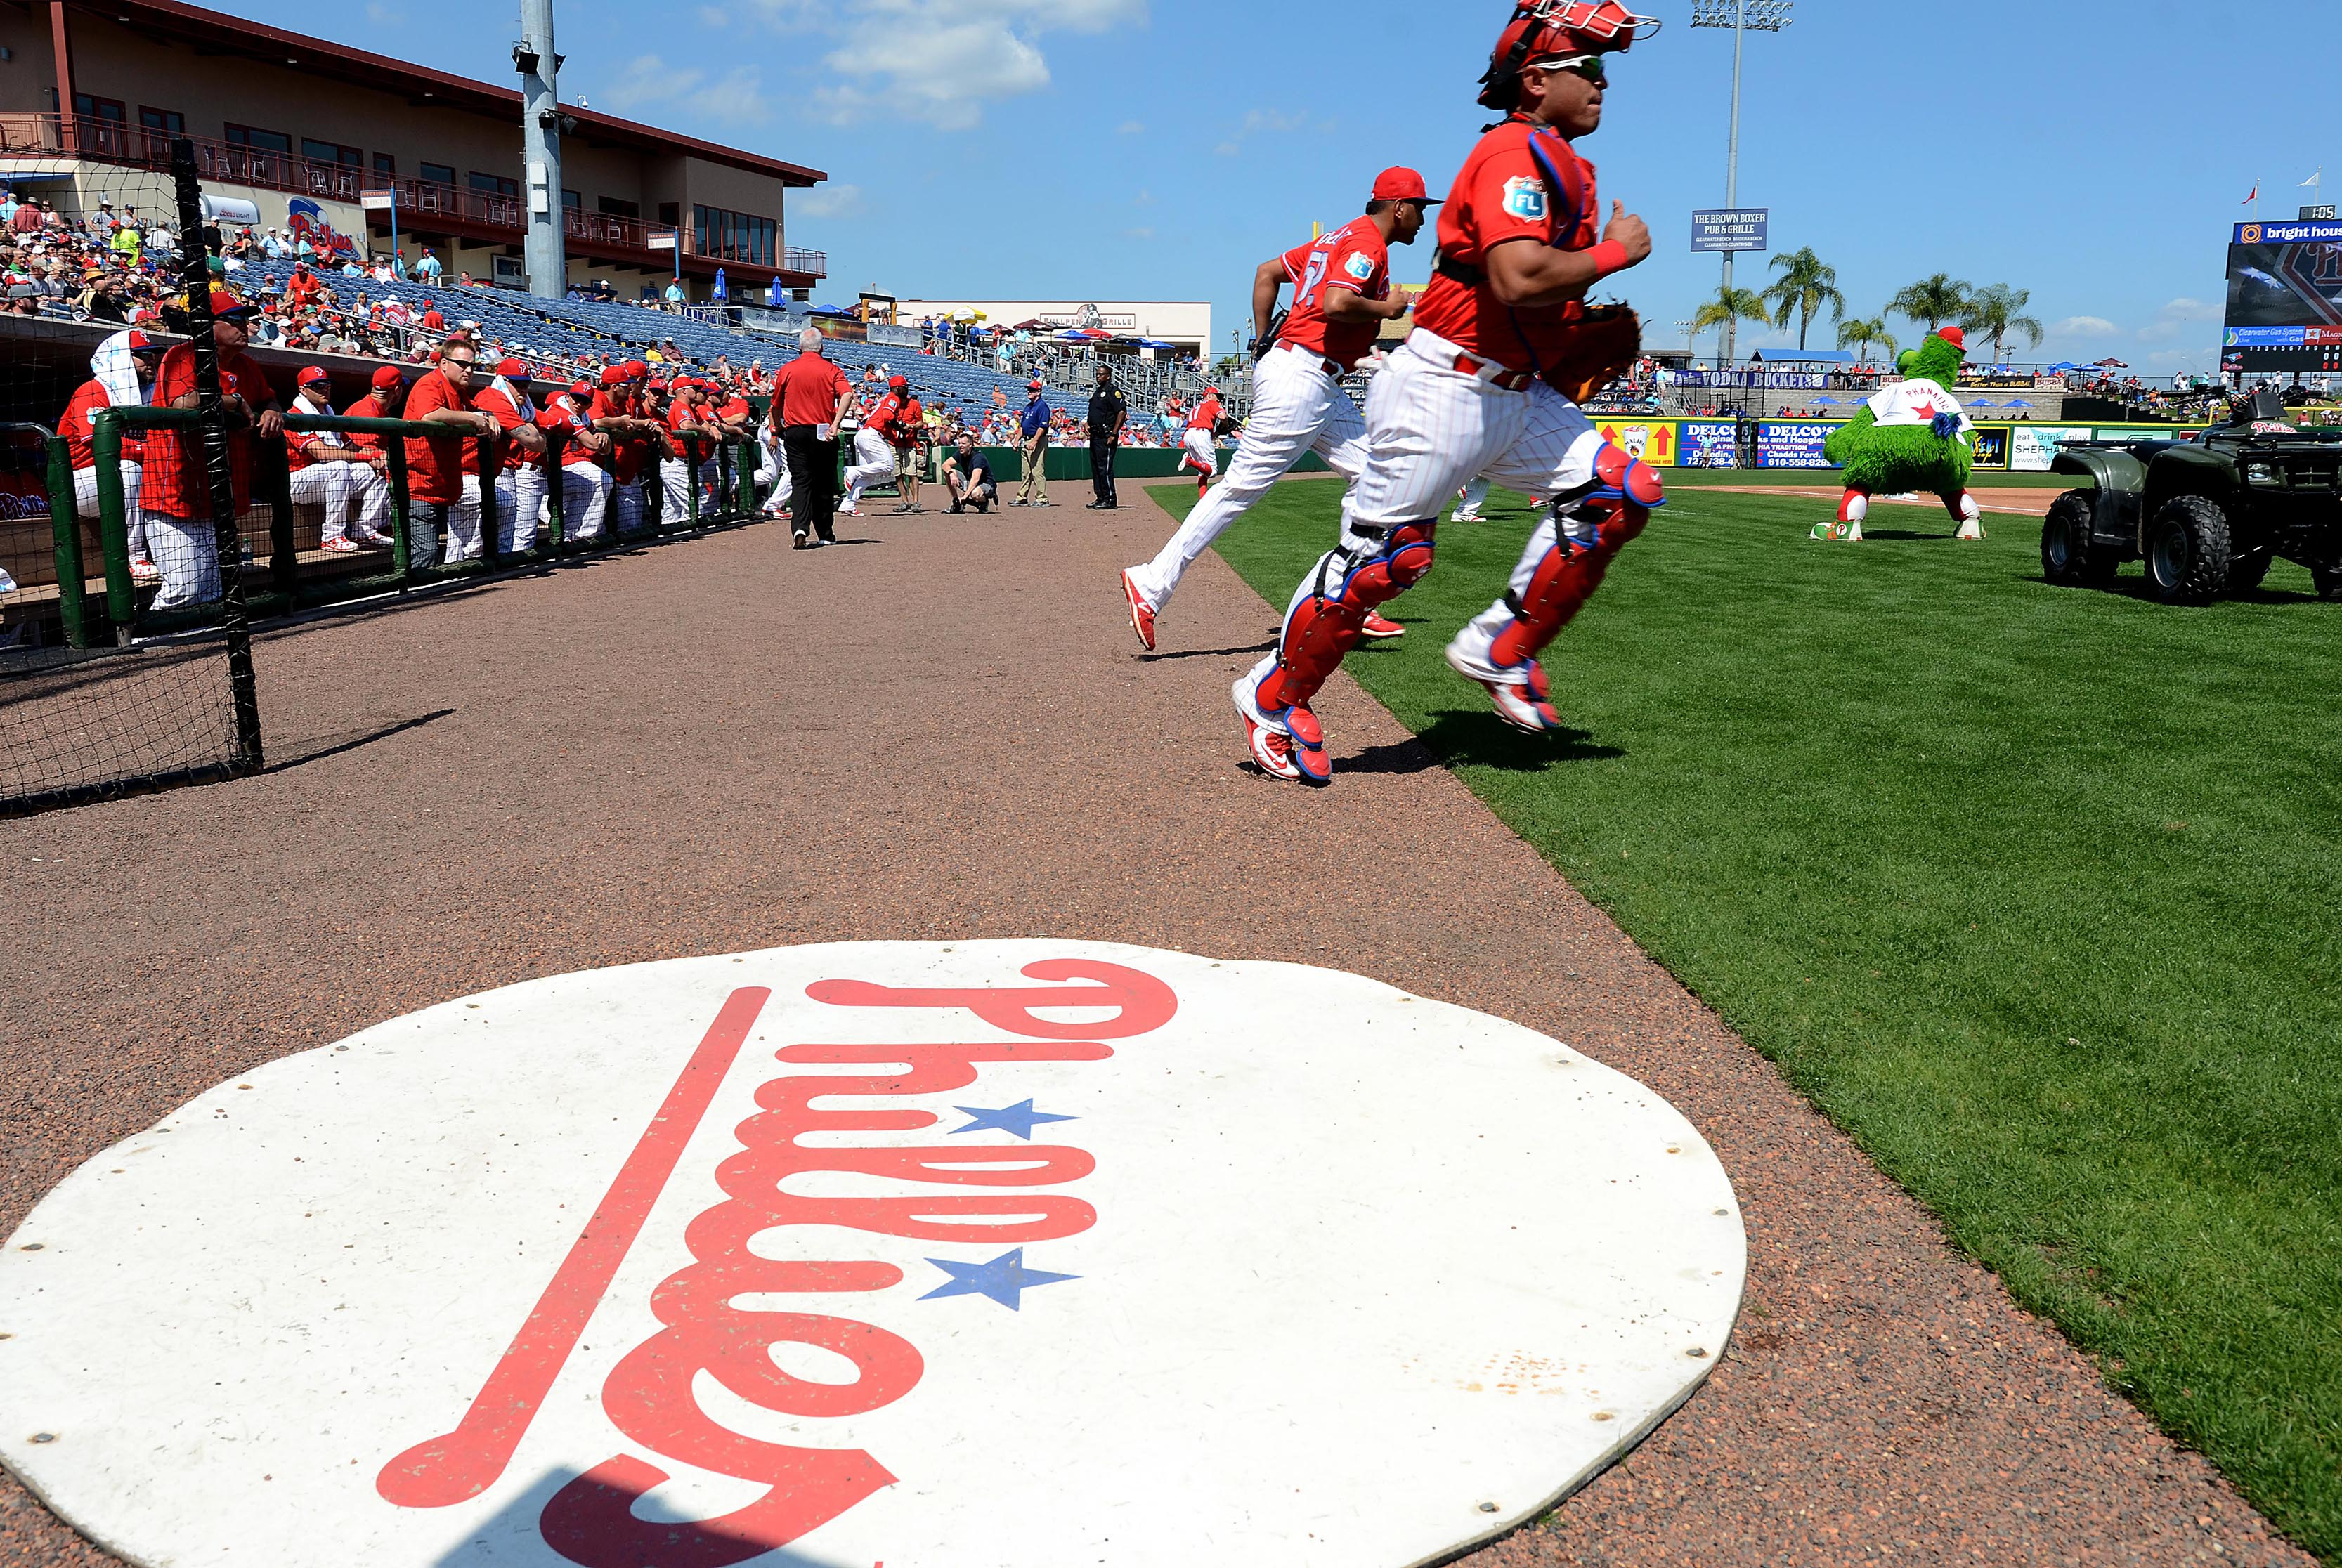 Phillies: Unpacking the Talent in Camp